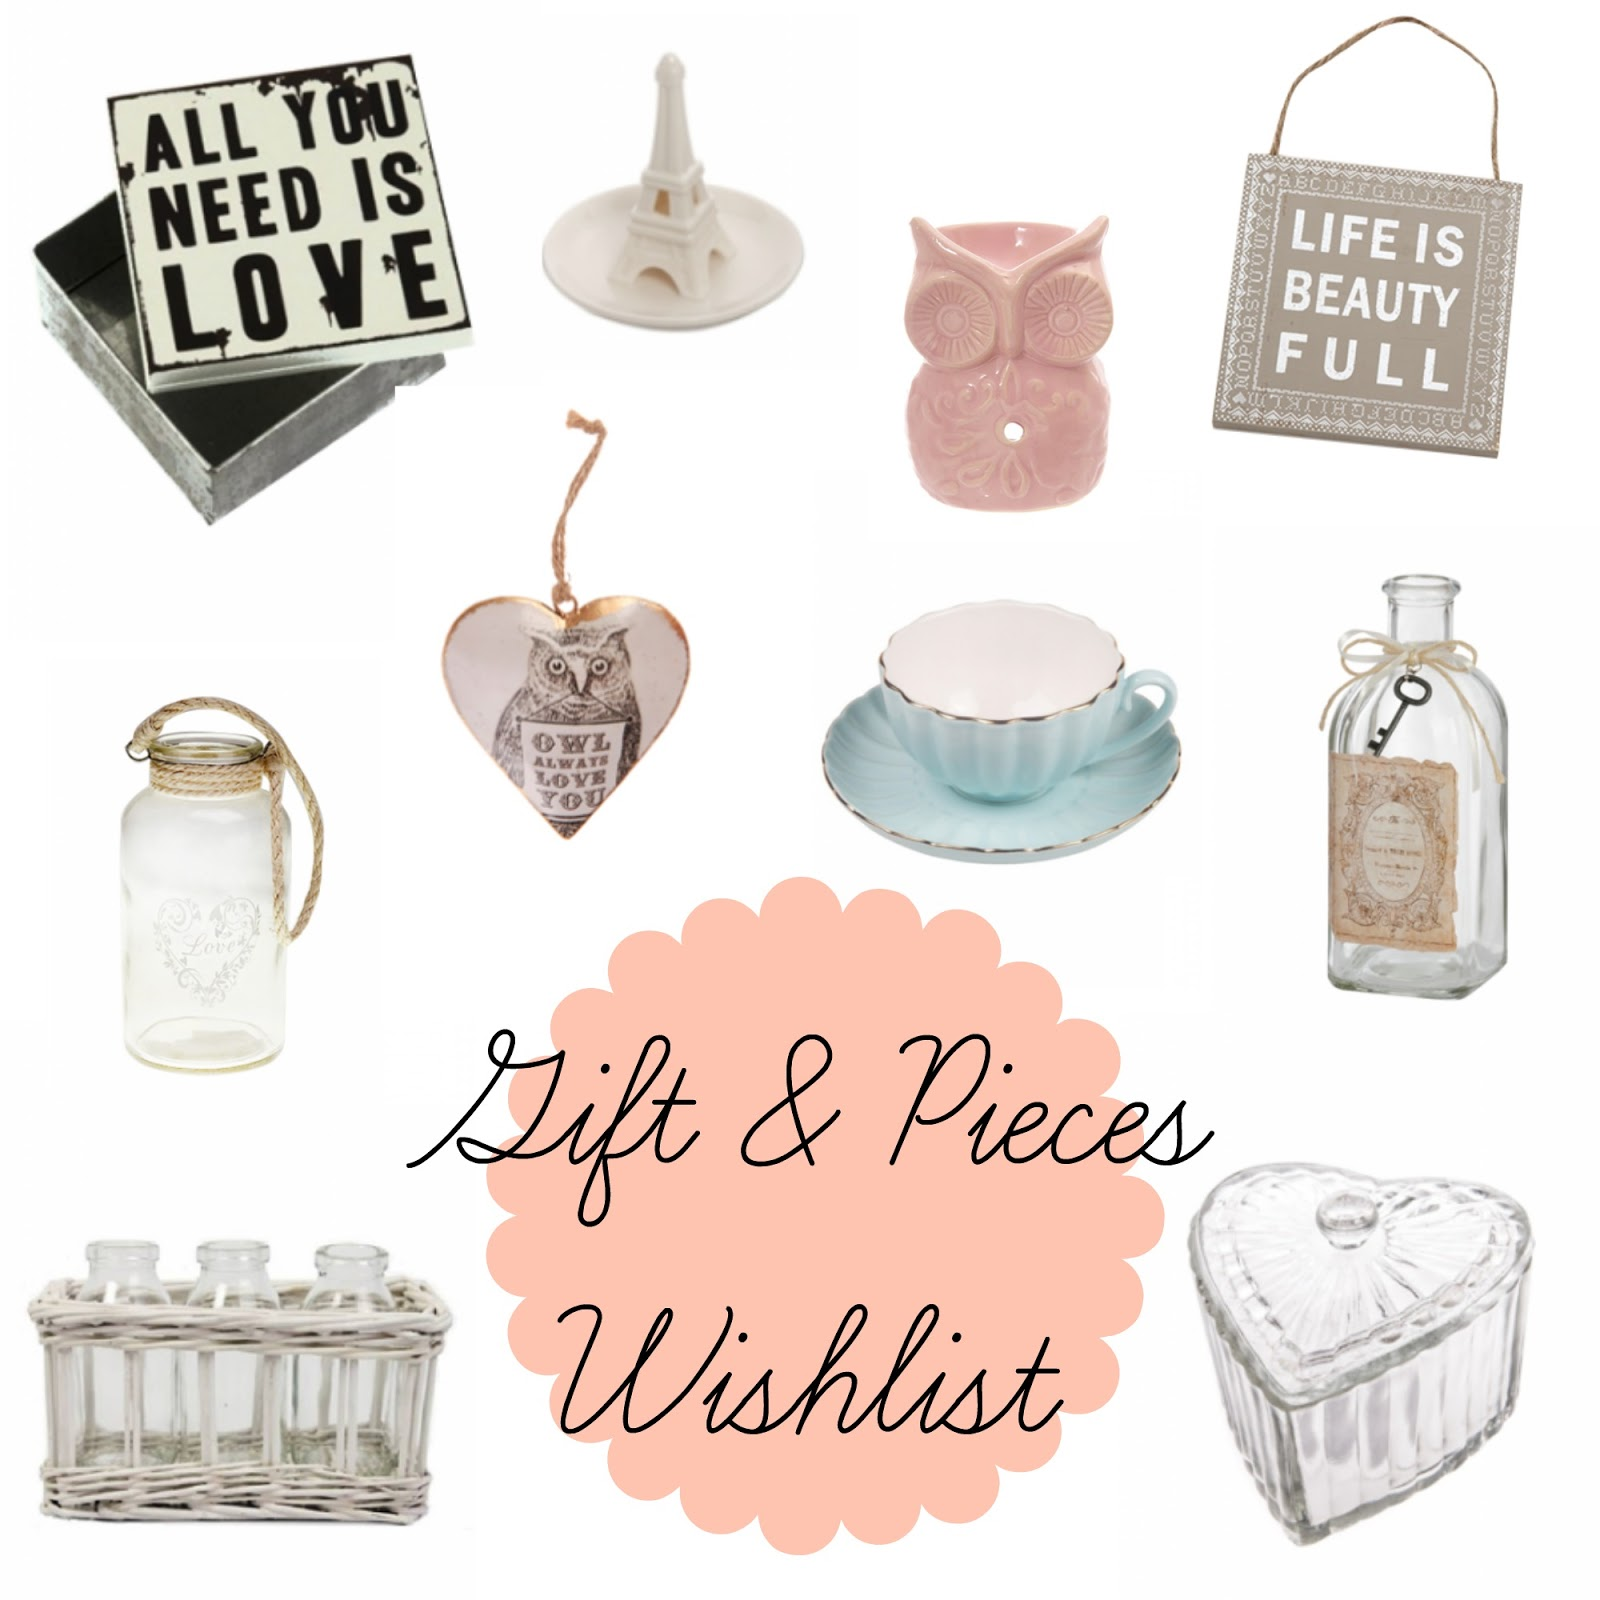 Gift and Pieces Wishlist